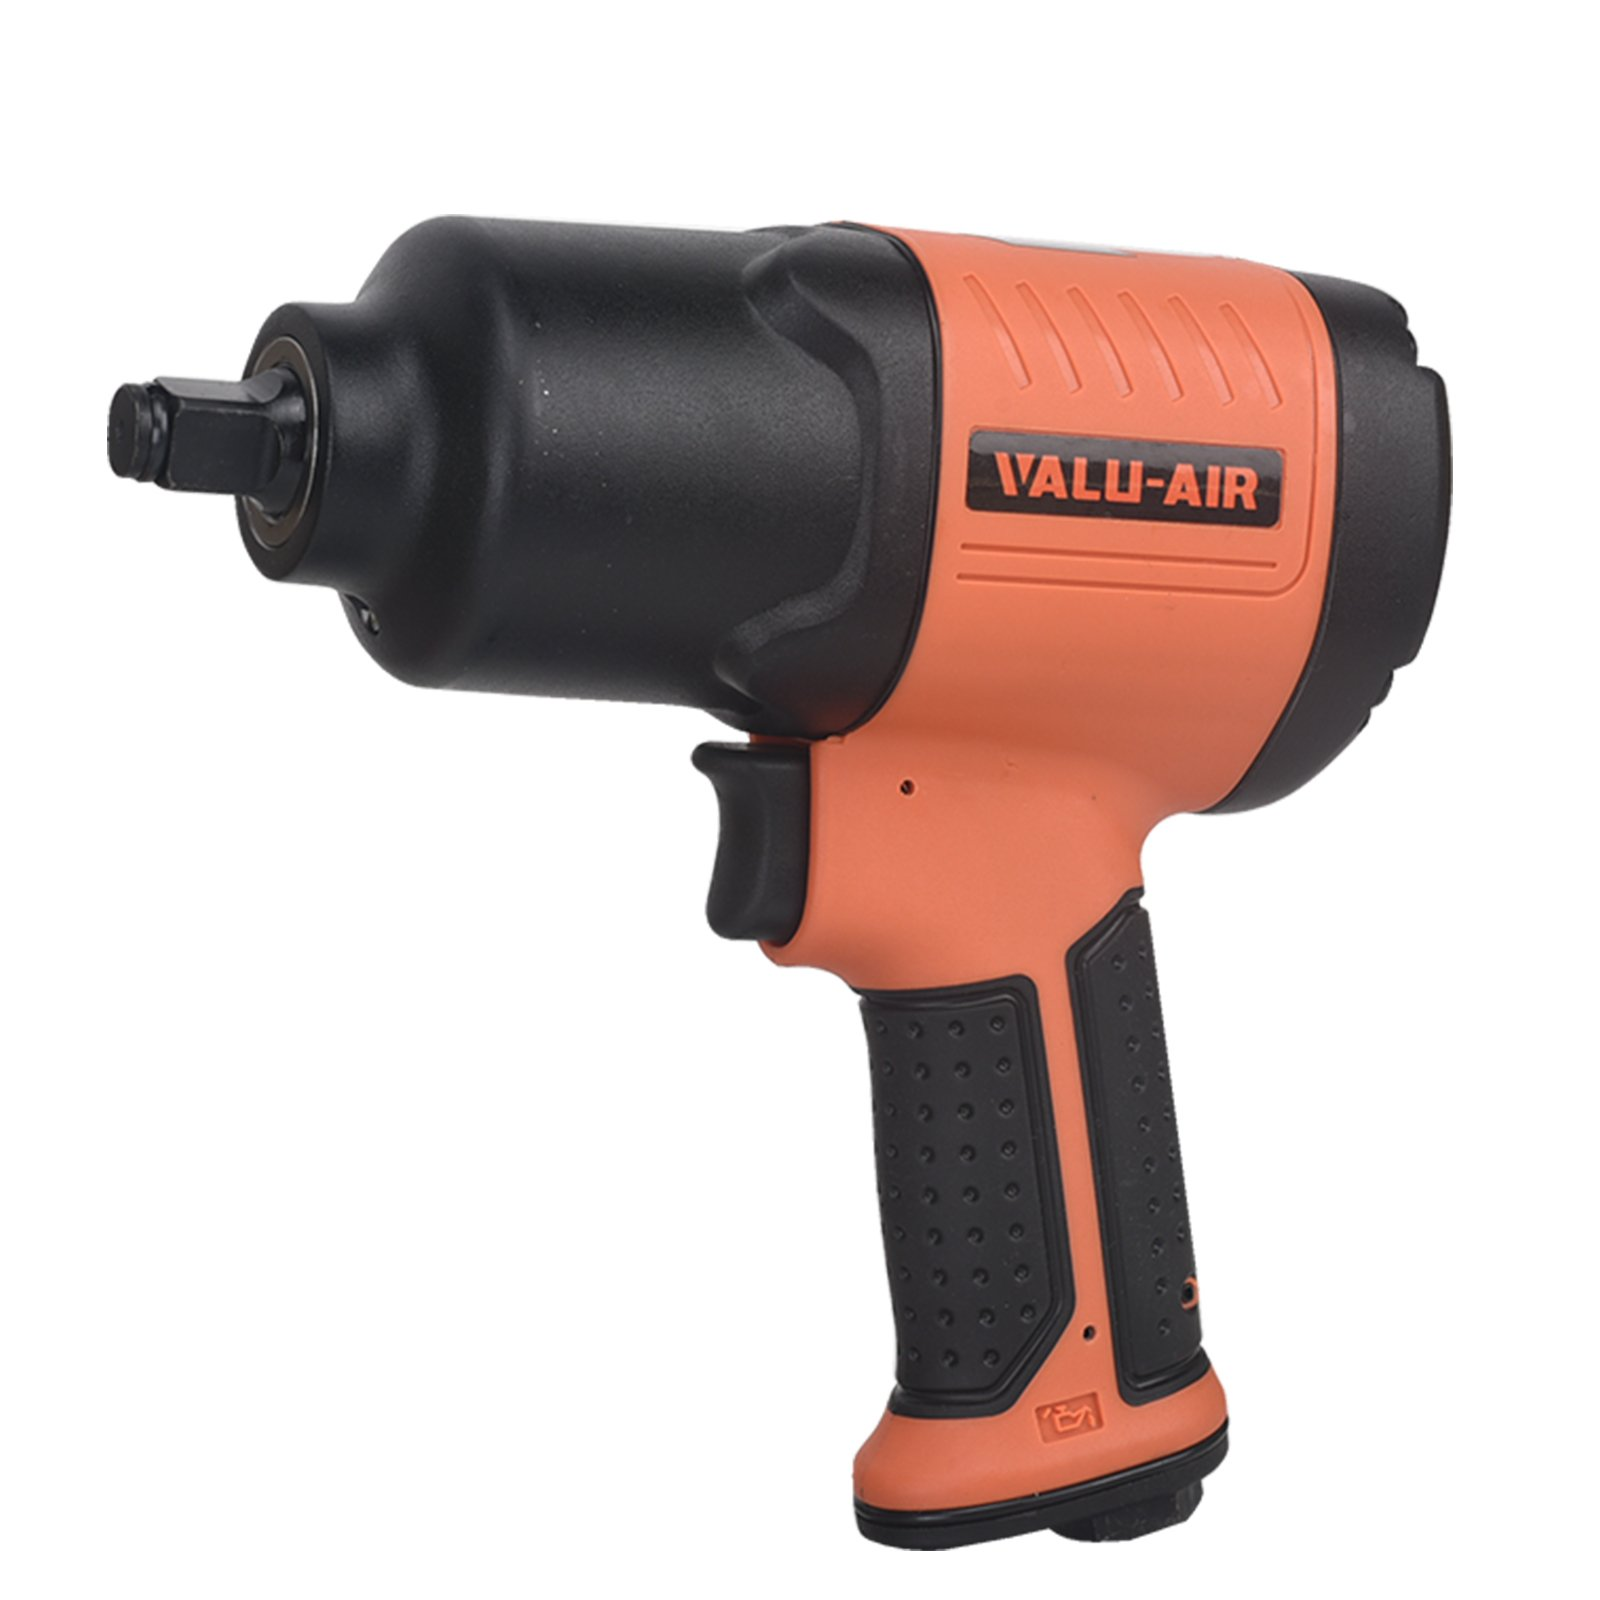 Valu-Air RP17407 1/2 Twin Hammer Air Impact Wrench by Valu-Air (Image #1)